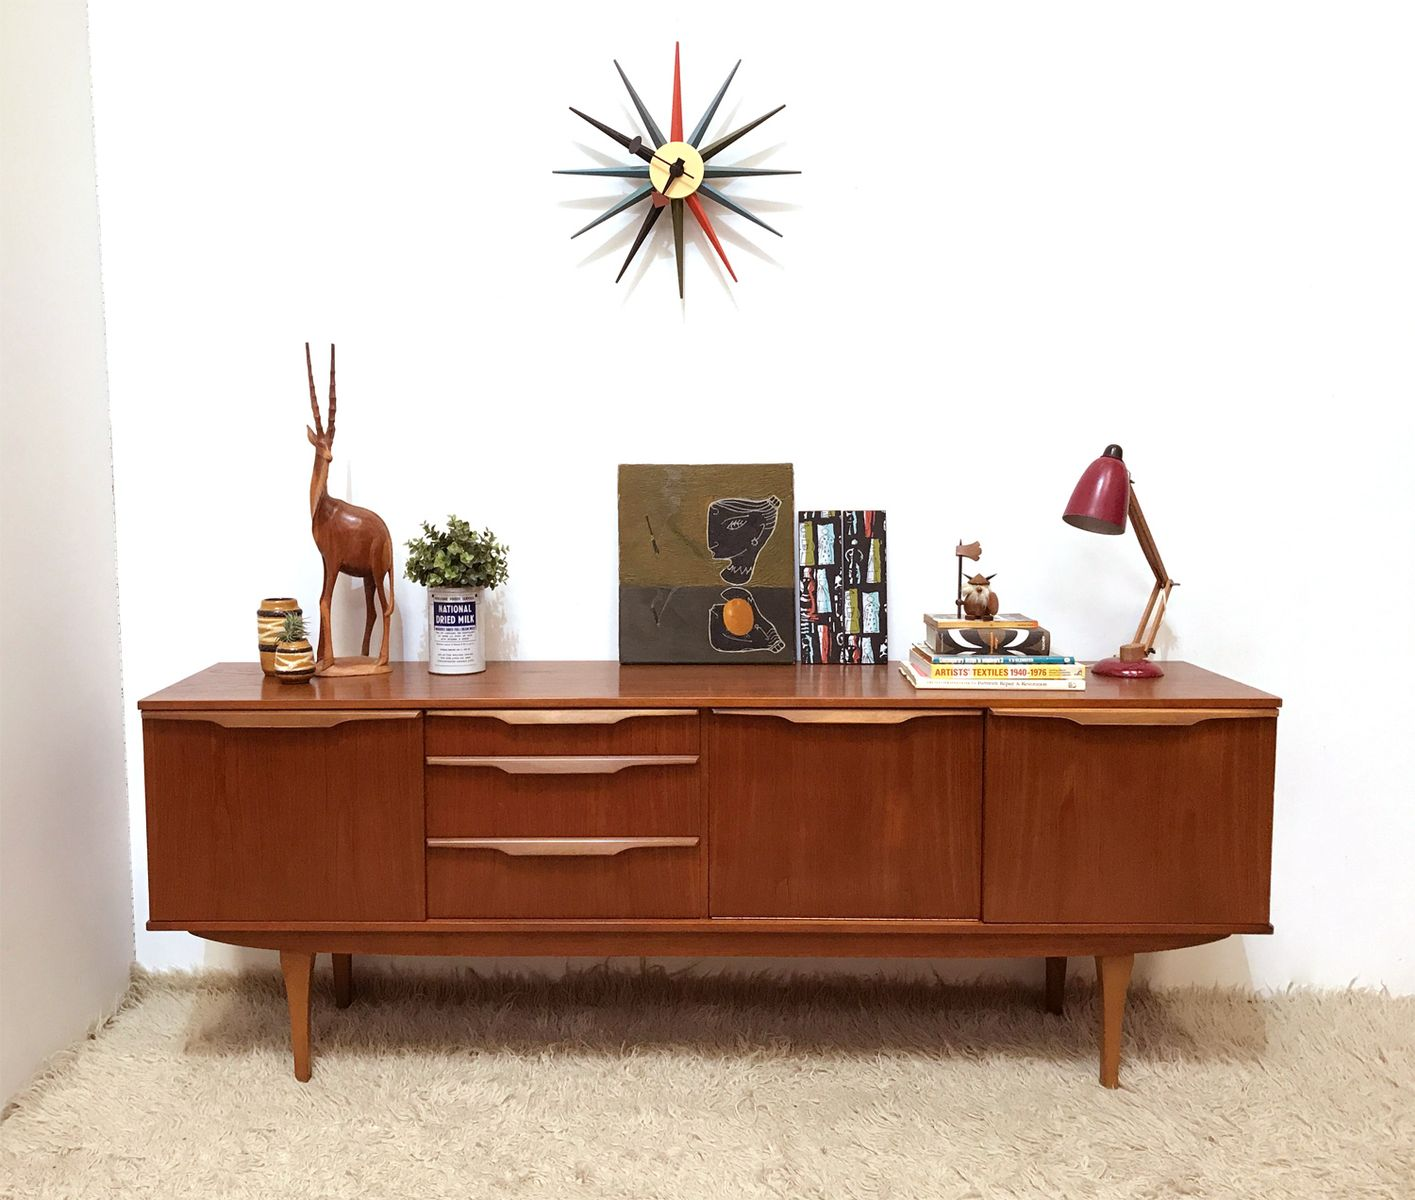 Mid century teak sideboard from stonehill 1960s for sale for Sideboard 1m breit